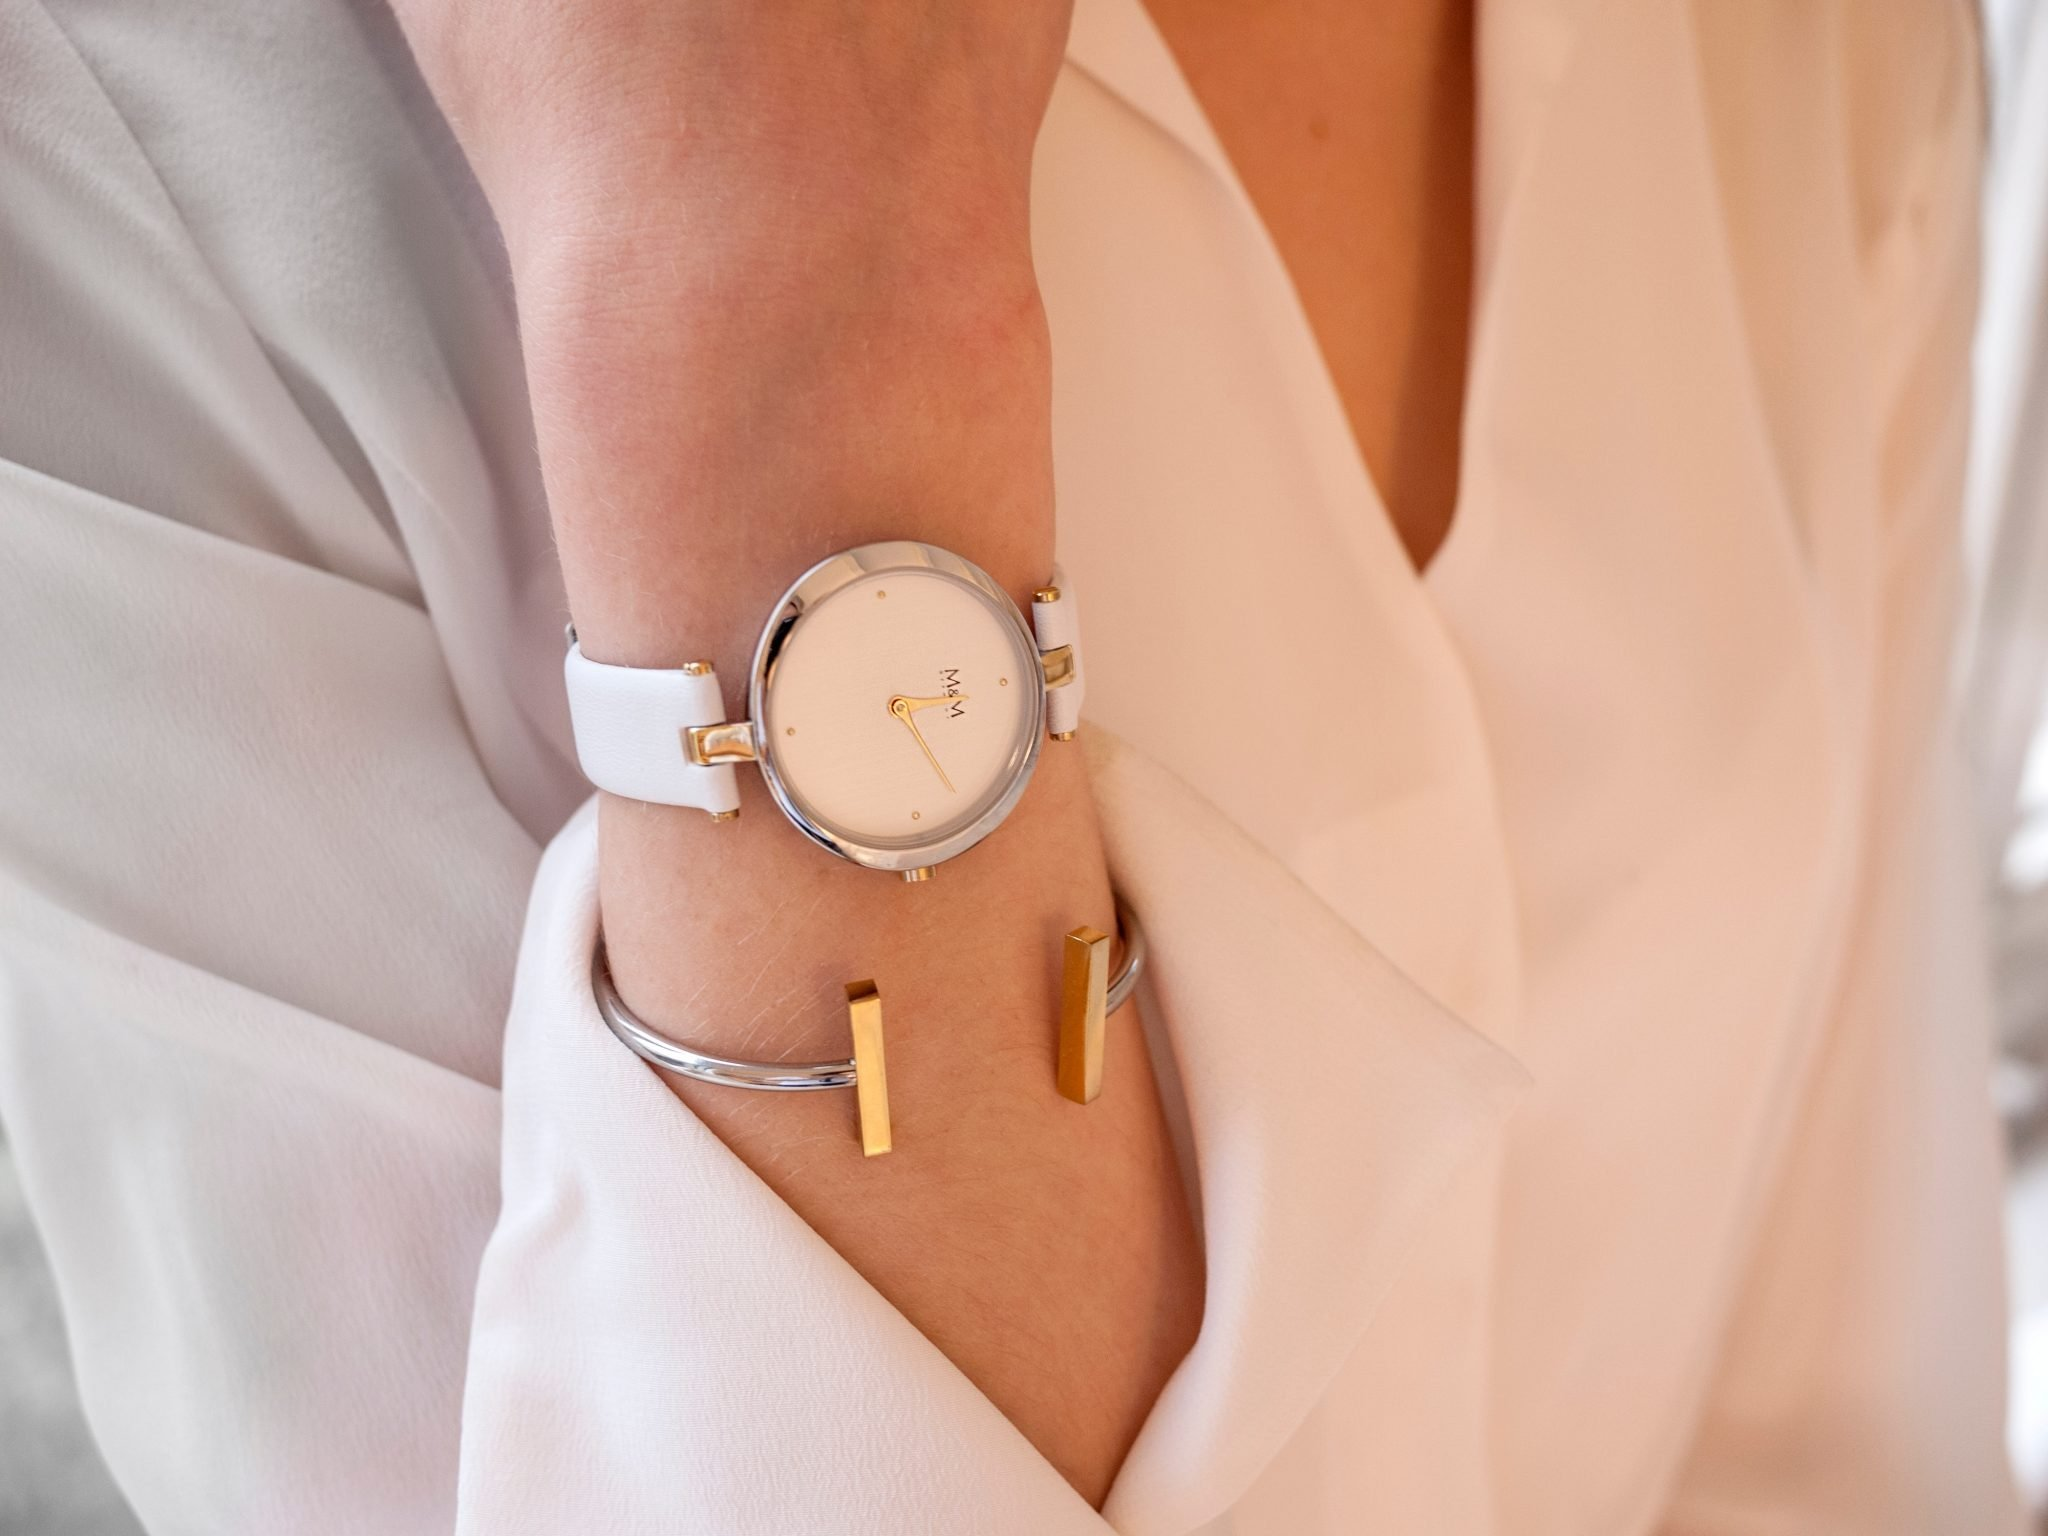 Affordable Automatic Watches For Women